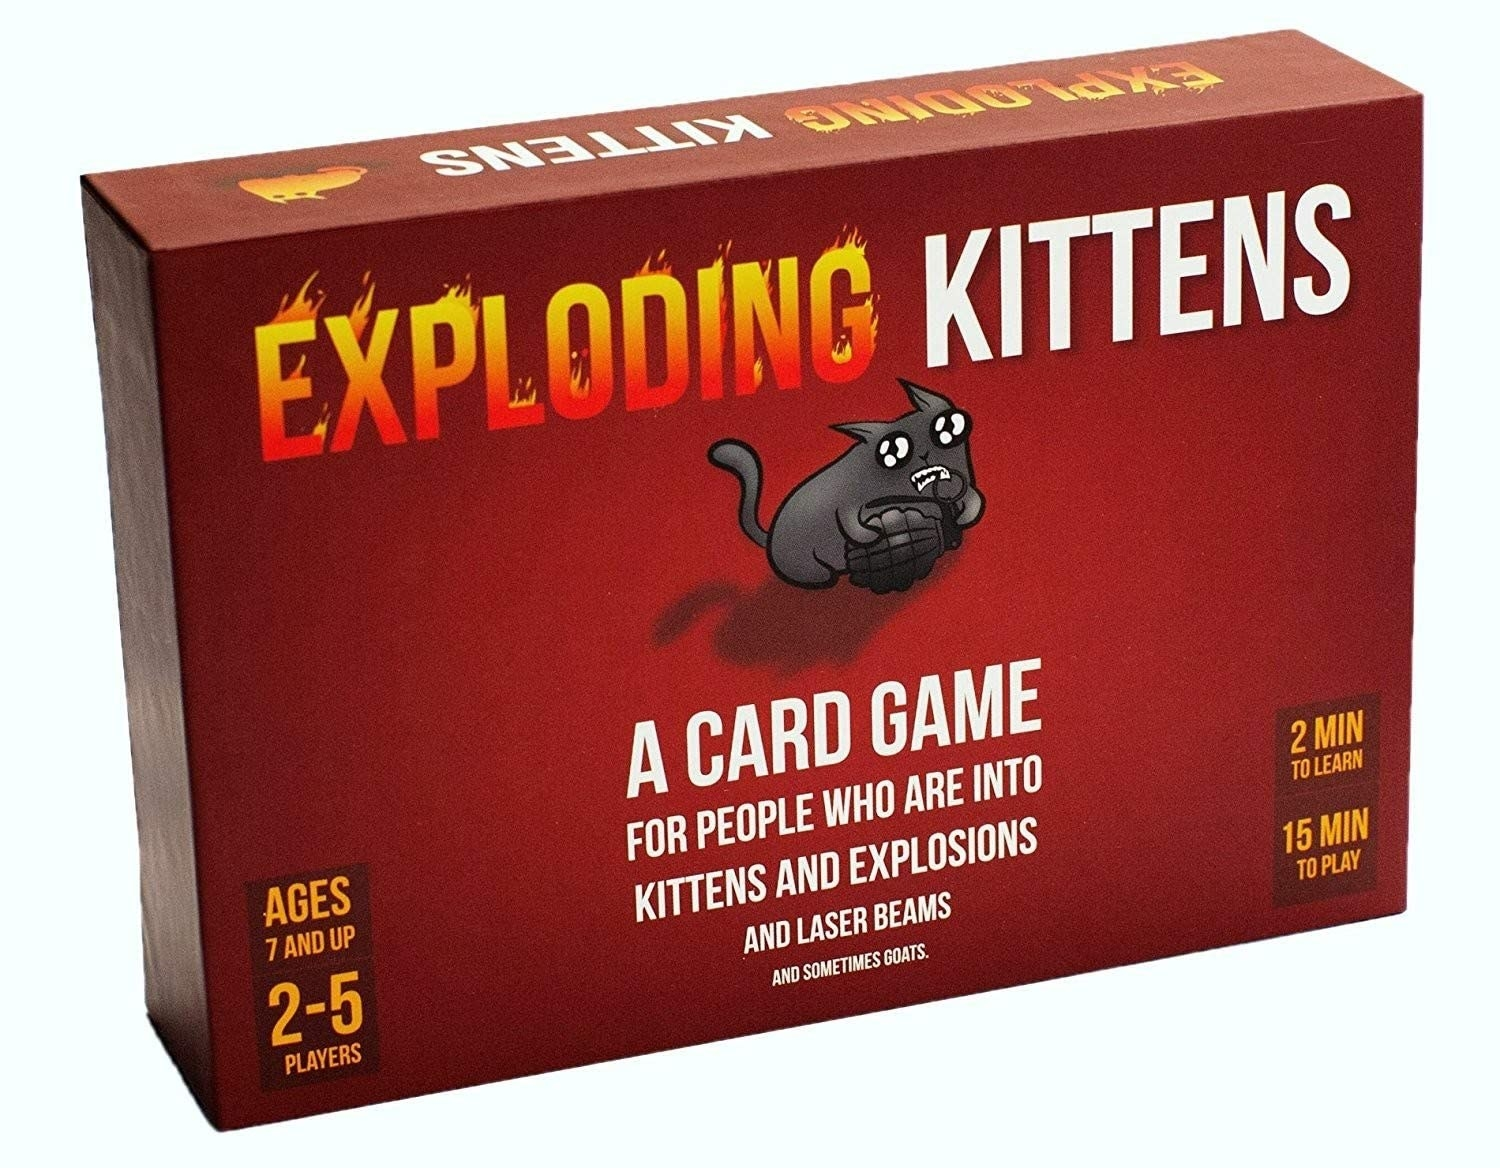 Exploding Kittens board game box with kitten on front